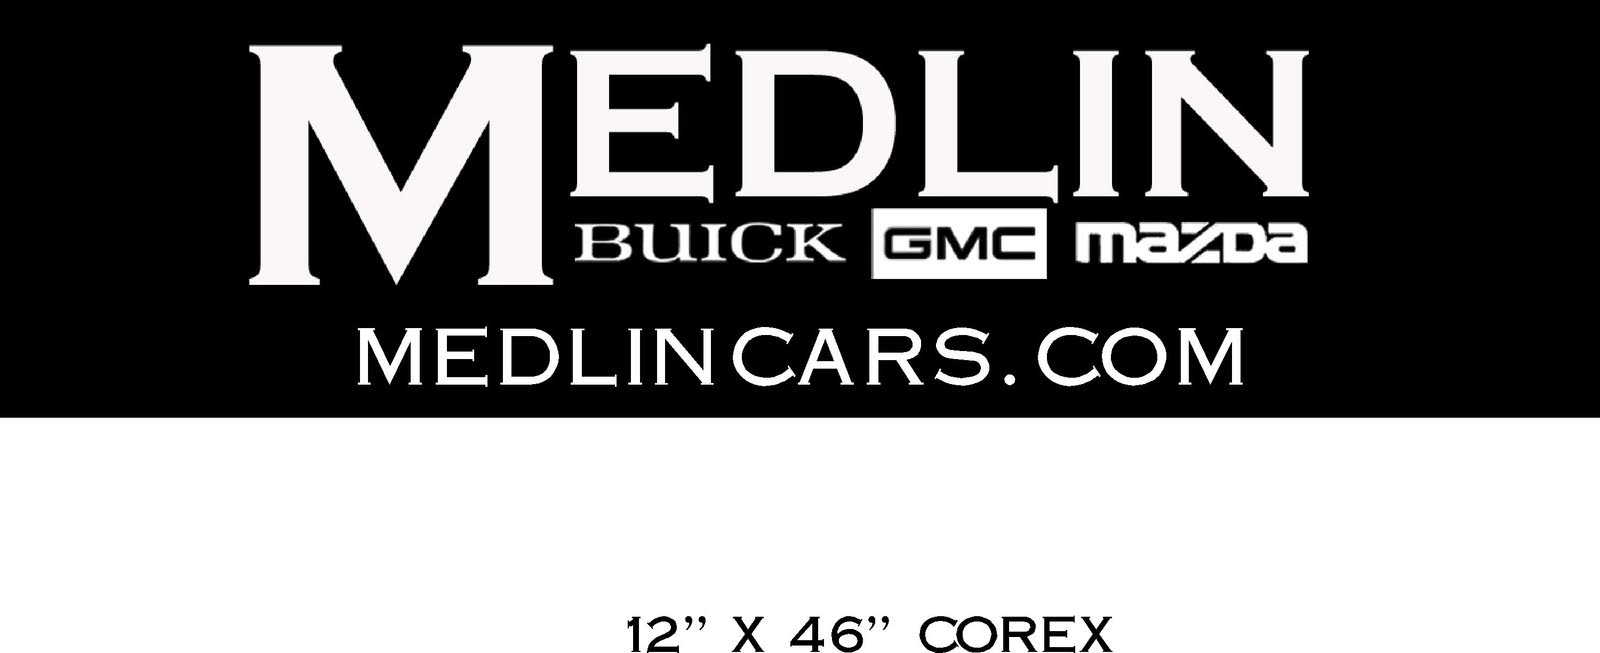 Medlin motors wilson nc for Medlin motors wilson nc